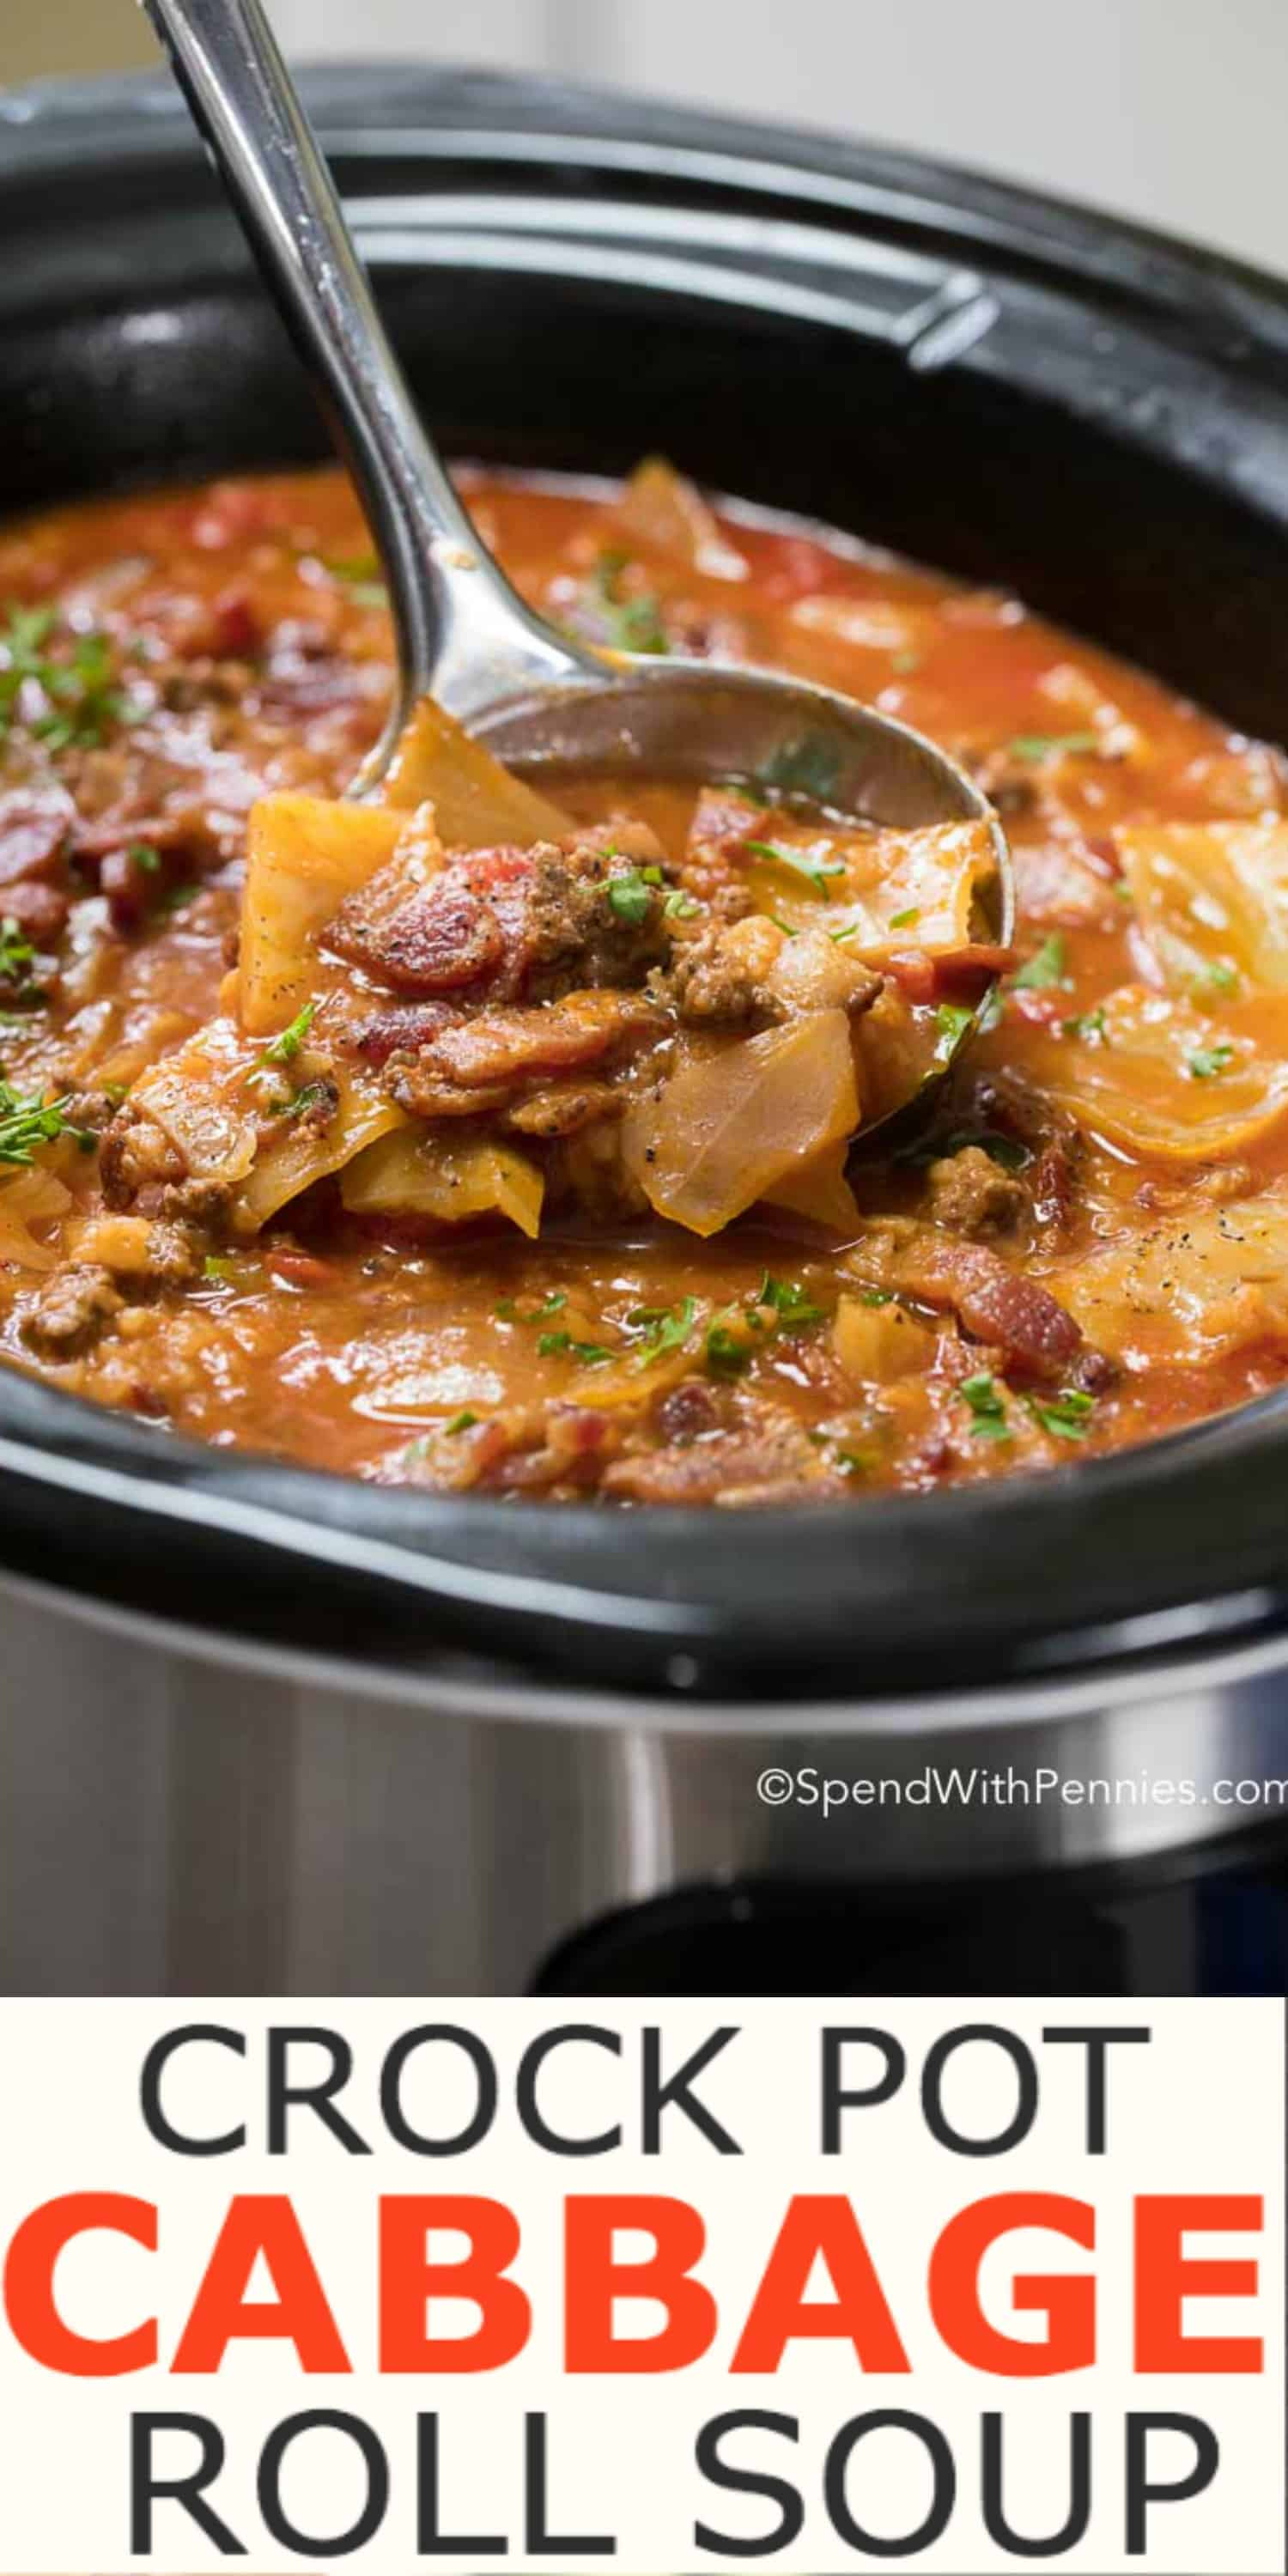 Crock Pot Cabbage Roll Soup is a simple twist on traditional Cabbage Rolls, a family favorite for years! Cabbage, onion, beef and bacon all tenderly prepared in a rich beef and tomato broth, simmered all day in the slow cooker. This creates a nutritious and tasty soup that will warm your belly from the inside out! #spendwithpennies #soup #cabbagerolls #easyrecipe #cabbage #heartymeal #crockpot